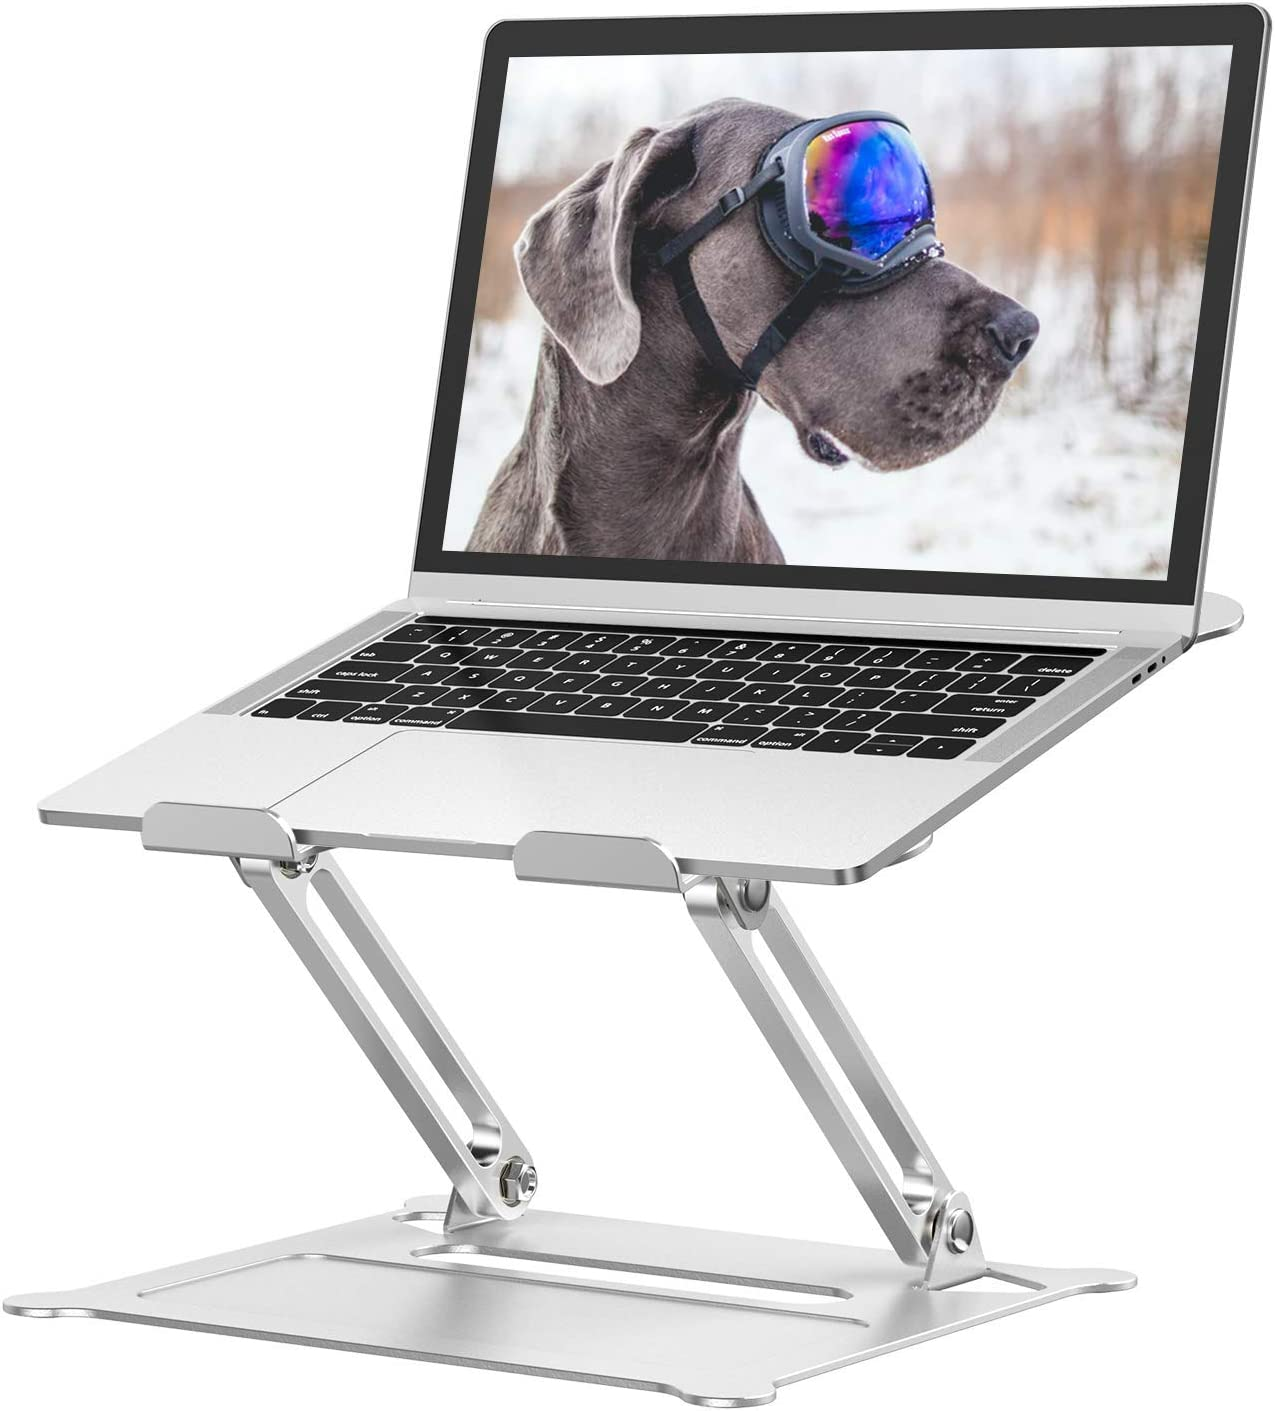 "Adjustable Laptop Stand, Ergonomic Portable Aluminum Stand,Multi-Angle Stand with Heat-Vent Laptop Compatible with 10""-15.6"" Inch MacBook, Dell, HP, Lenovo More Tablet,Projector Classic Silver"